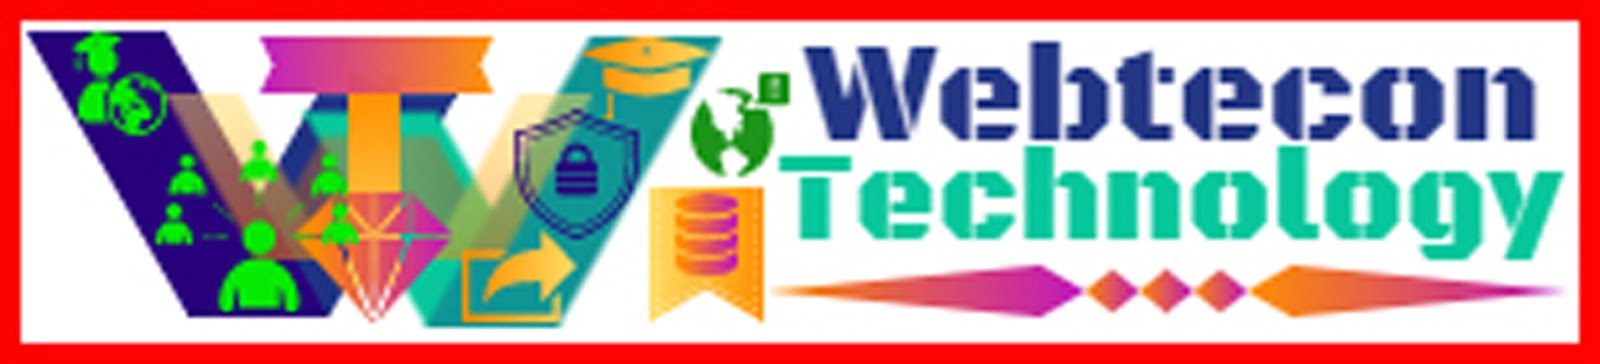 WebTecon Technology